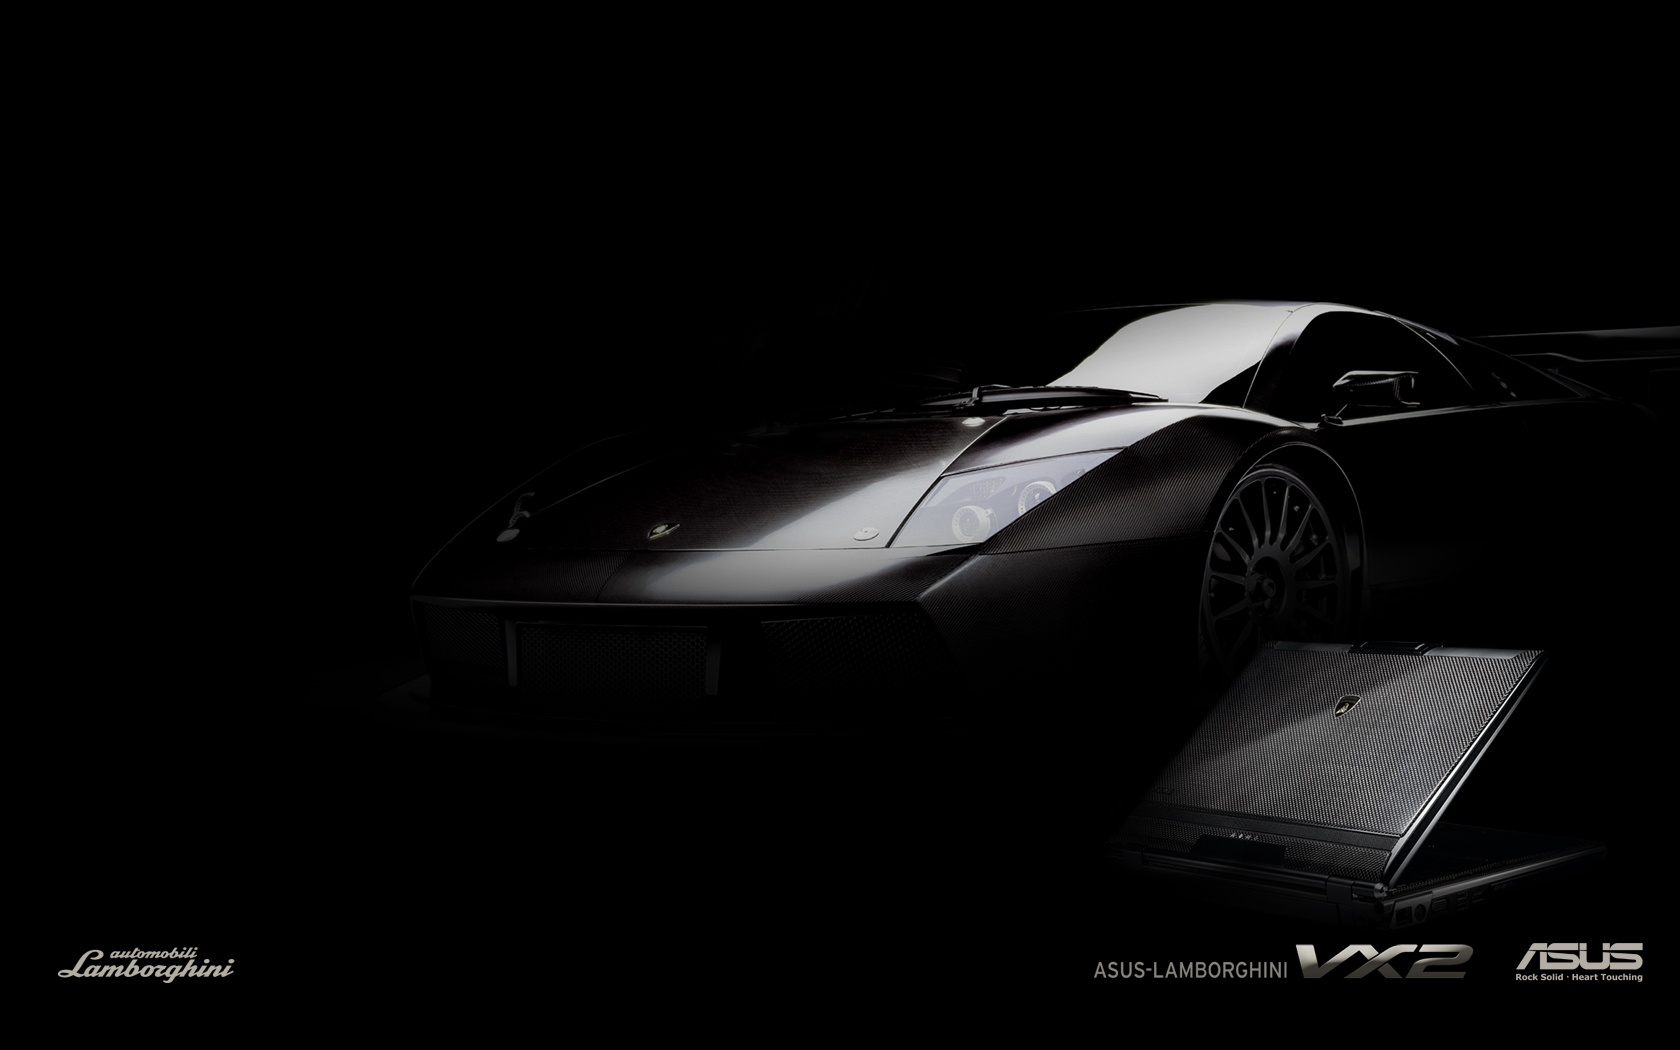 HQ Asus Lamborghini Vx2 Black Laptop Wallpaper   HQ Wallpapers 1680x1050